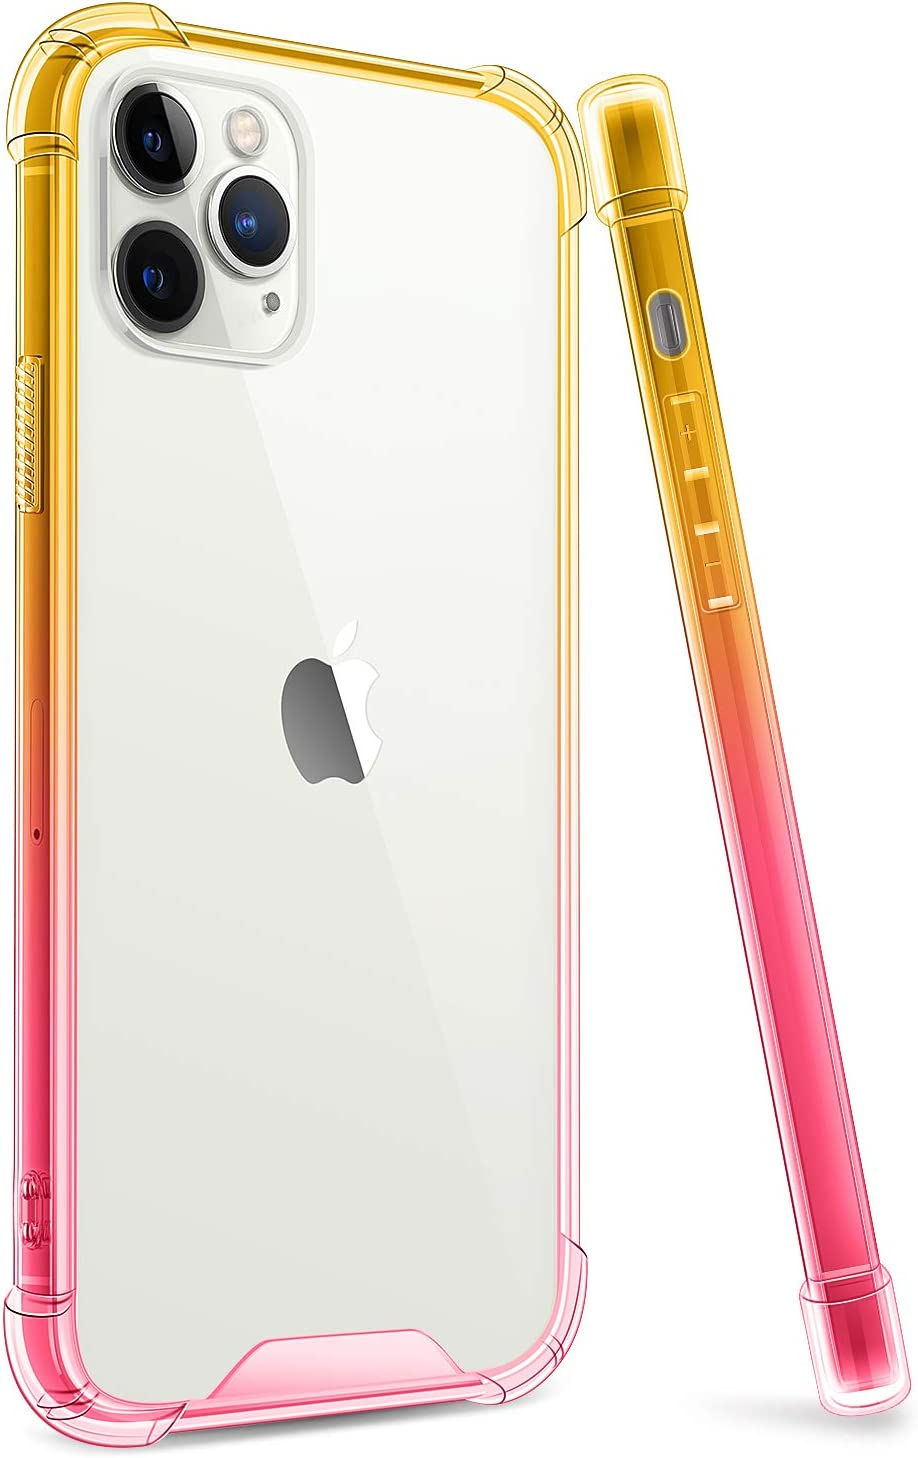 ANSIWEE Designed for iPhone 12 Pro 6.1 Inch Case, Military Grade Shock Drop Proof Impact Resist Extreme Durable Soft Gradient Bumper Clear Hard Back Cases for iPhone 12 5G (Gold Yellow Pink)